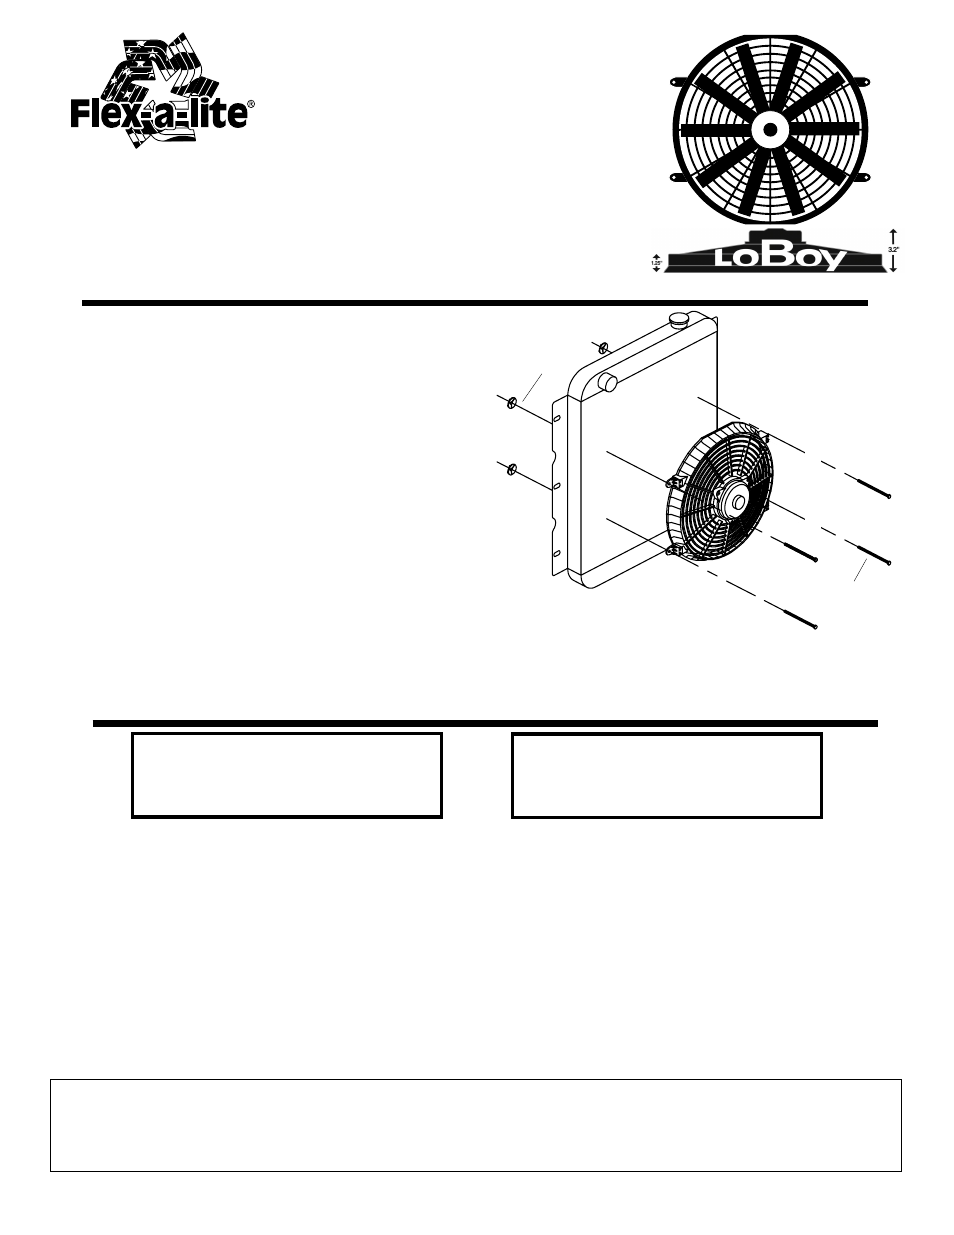 flex-a-lite 119 pusher loboy electric fan user manual | 1 ... flex a lite electric fan wiring diagram